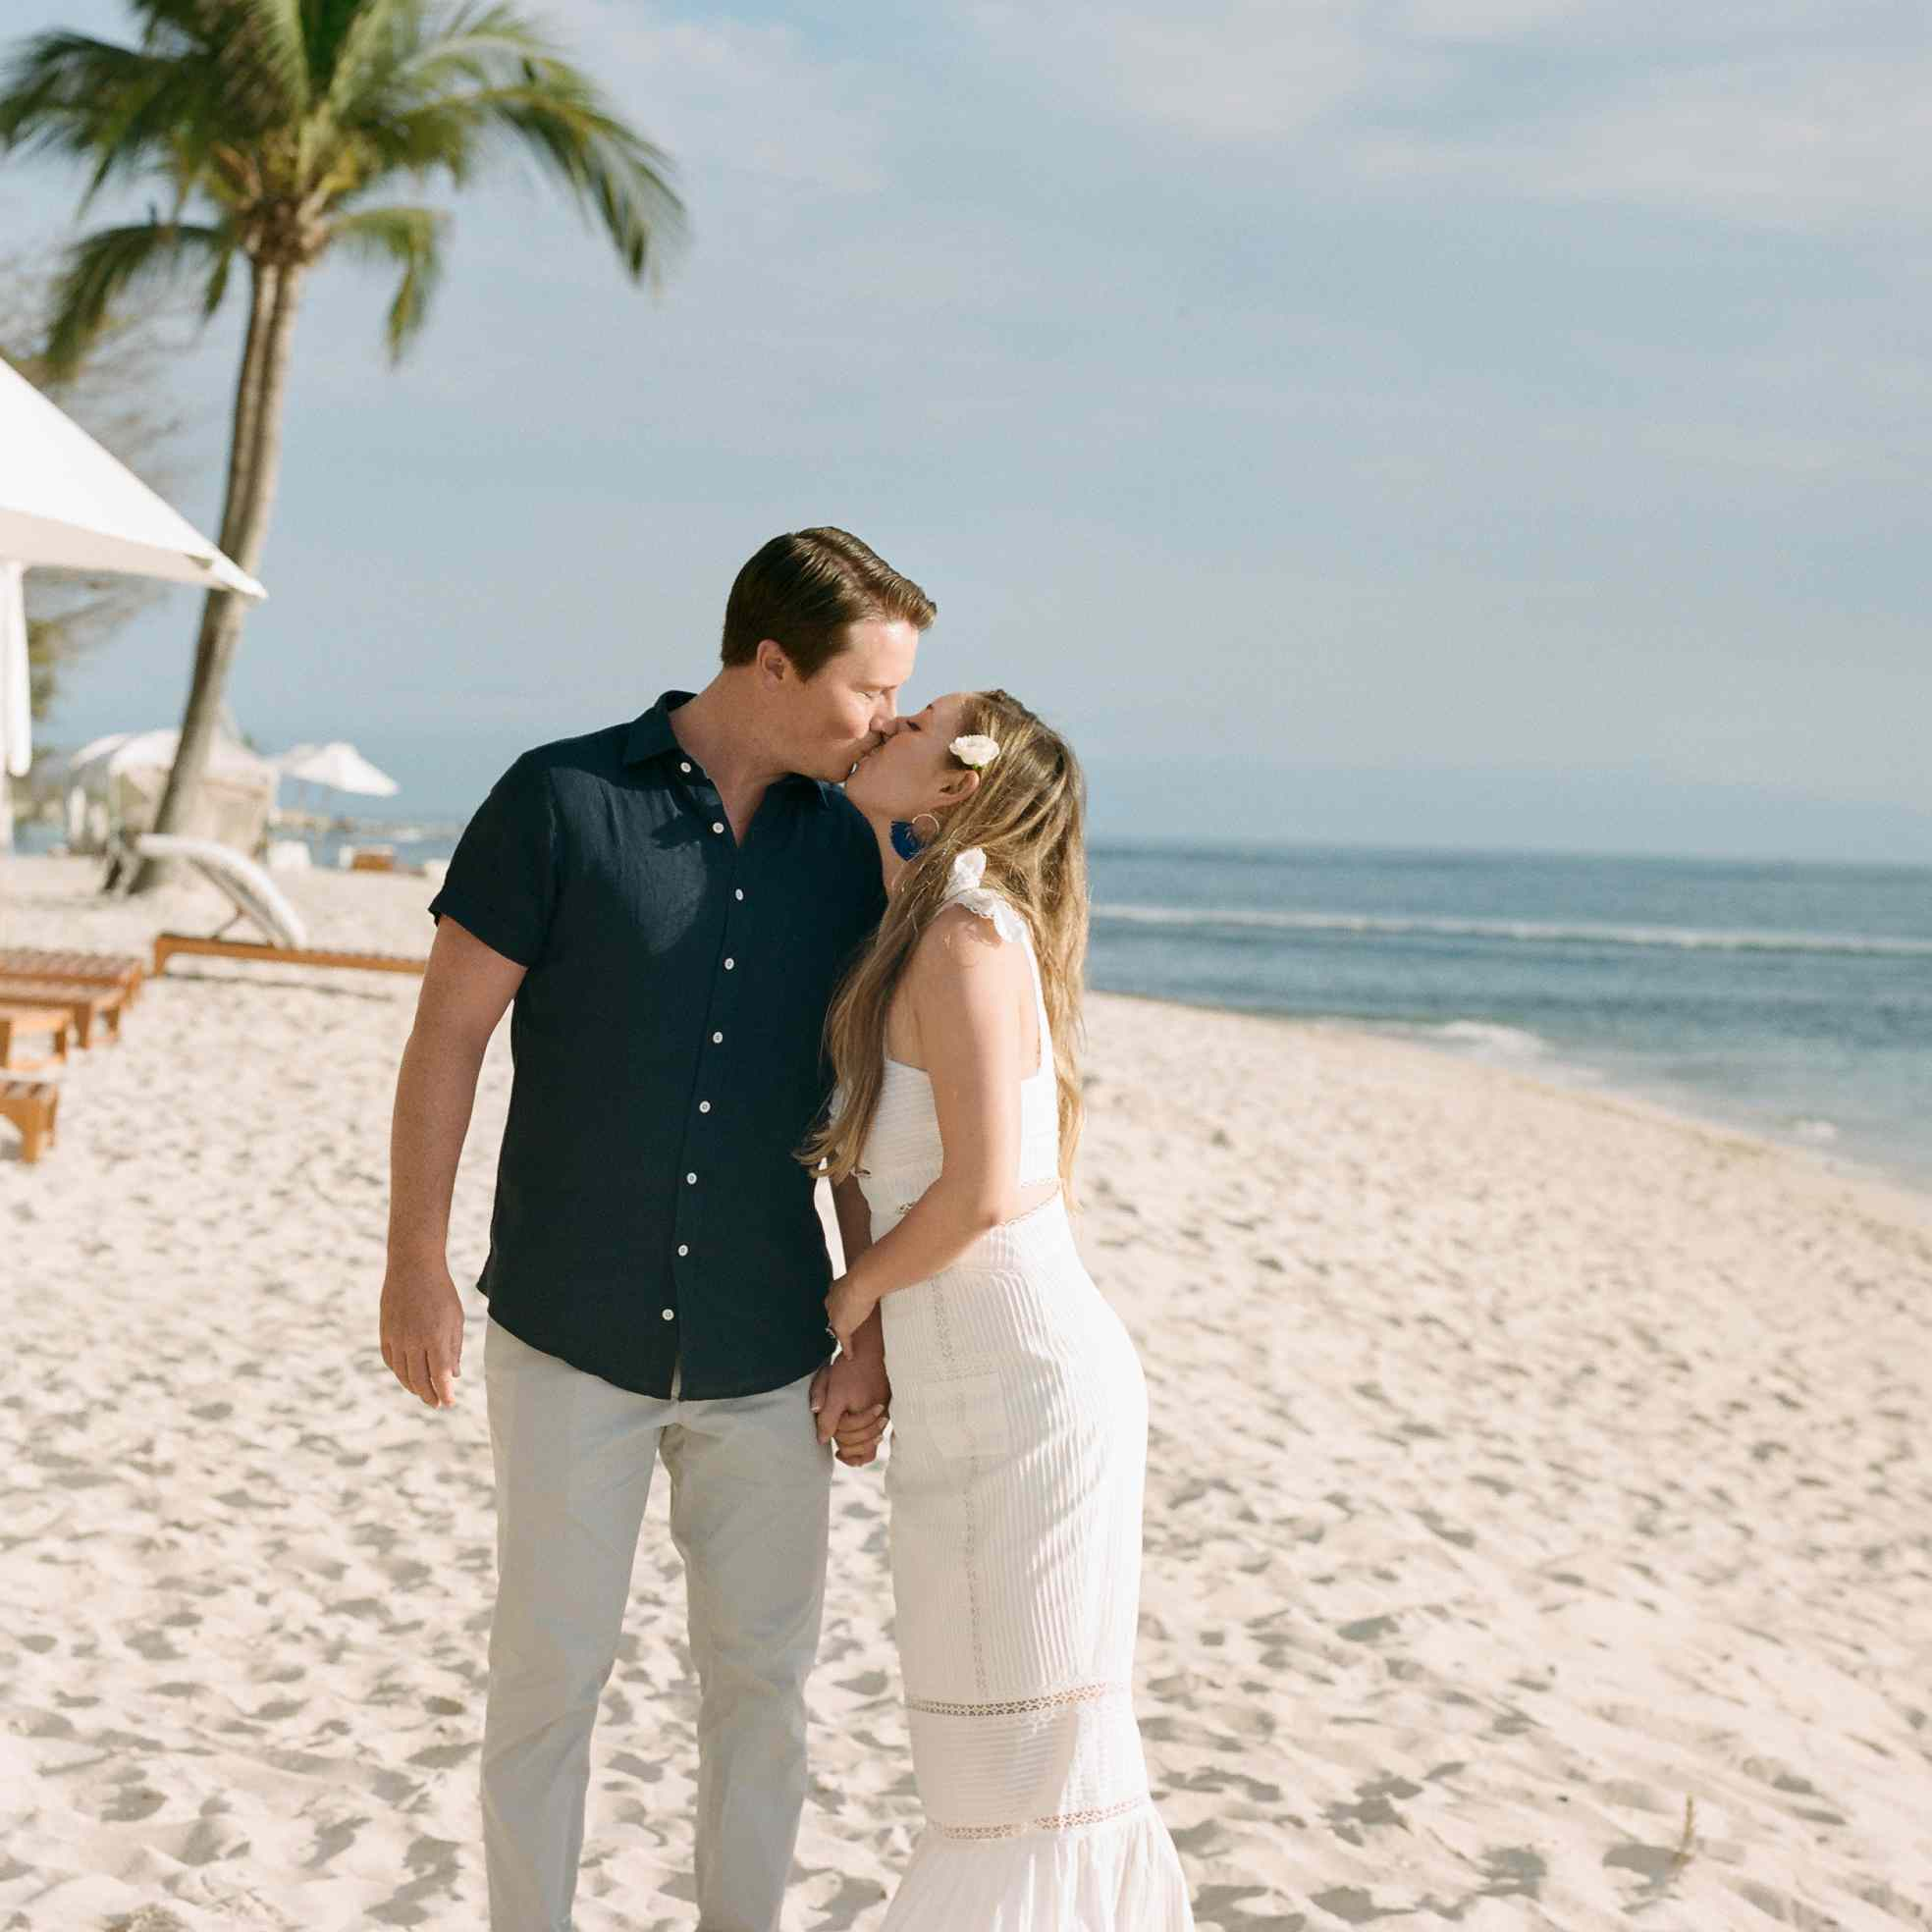 The bride and groom kiss on the beach